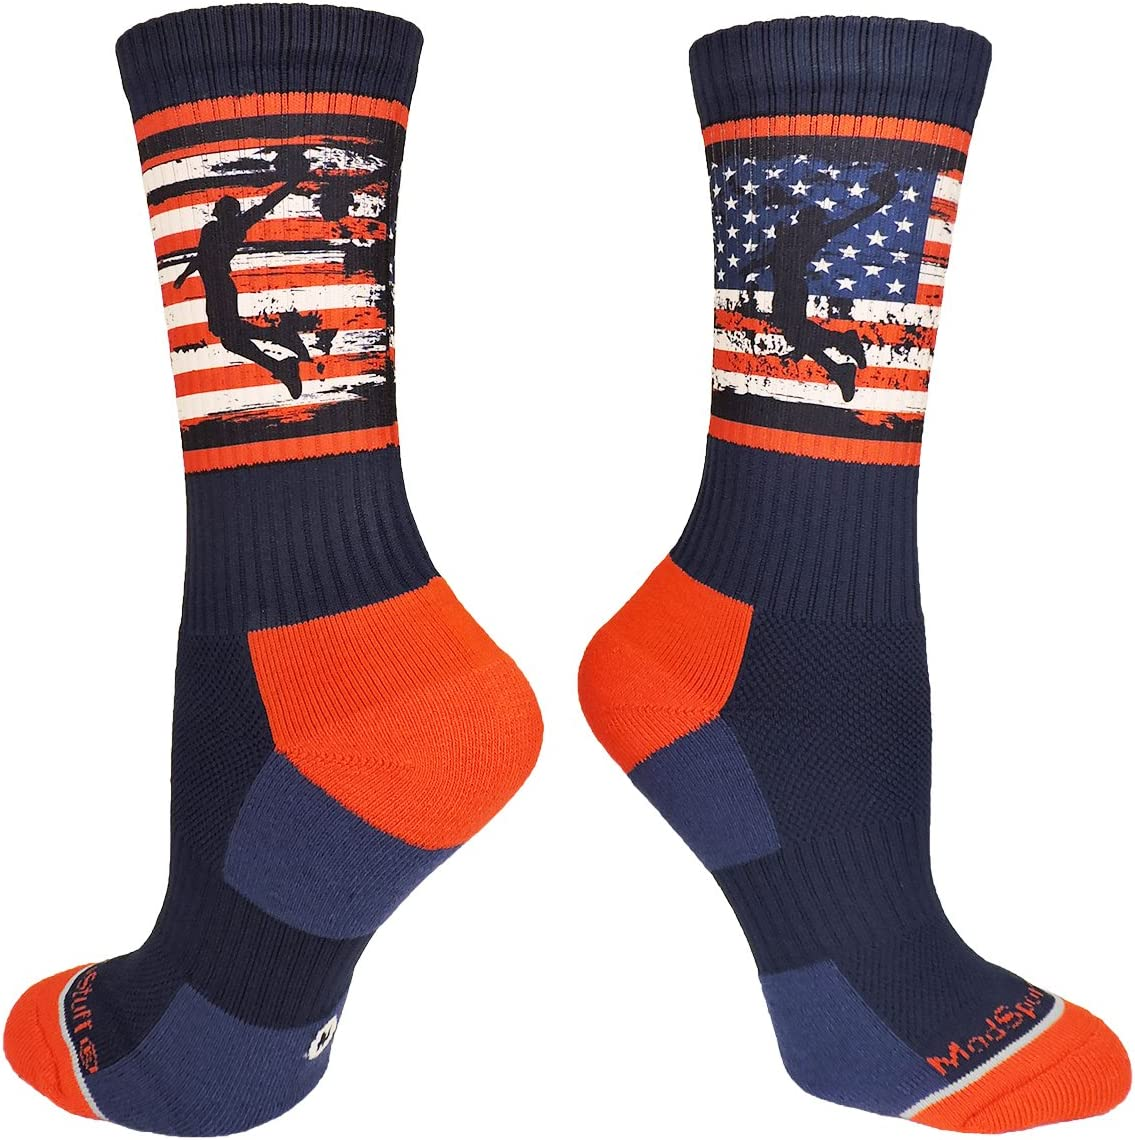 MadSportsStuff USA Basketball Socks with American Flag and Player Crew Length